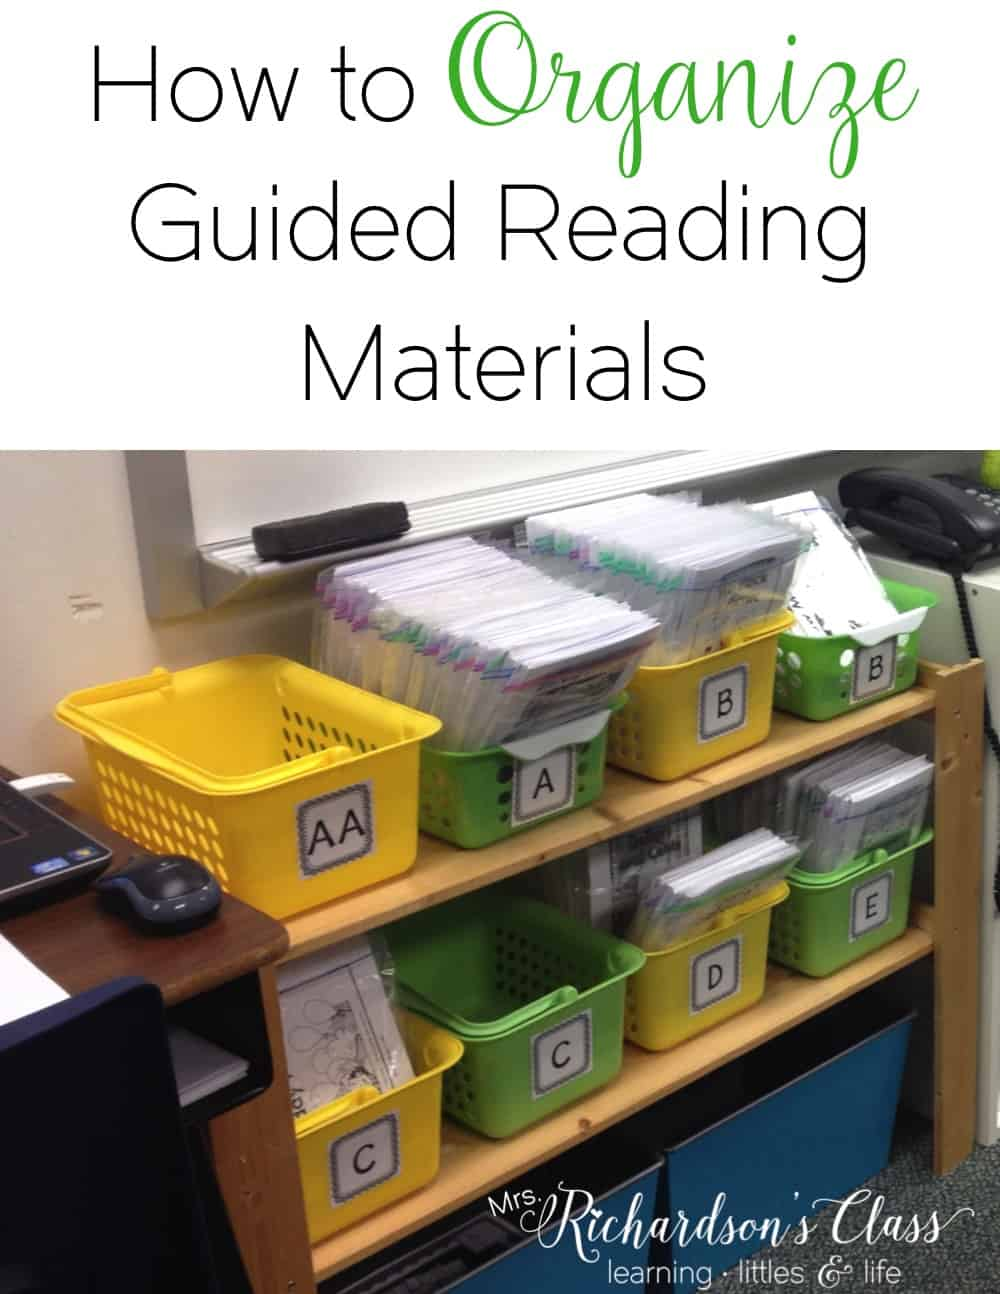 Organizing your guided reading materials can be overwhelming. Come see how this teacher keeps it all together and organized in her classroom! Don't forget to grab the FREEBIES! #guidedreading #balancedliteracy #classroomorganization #readingteacher